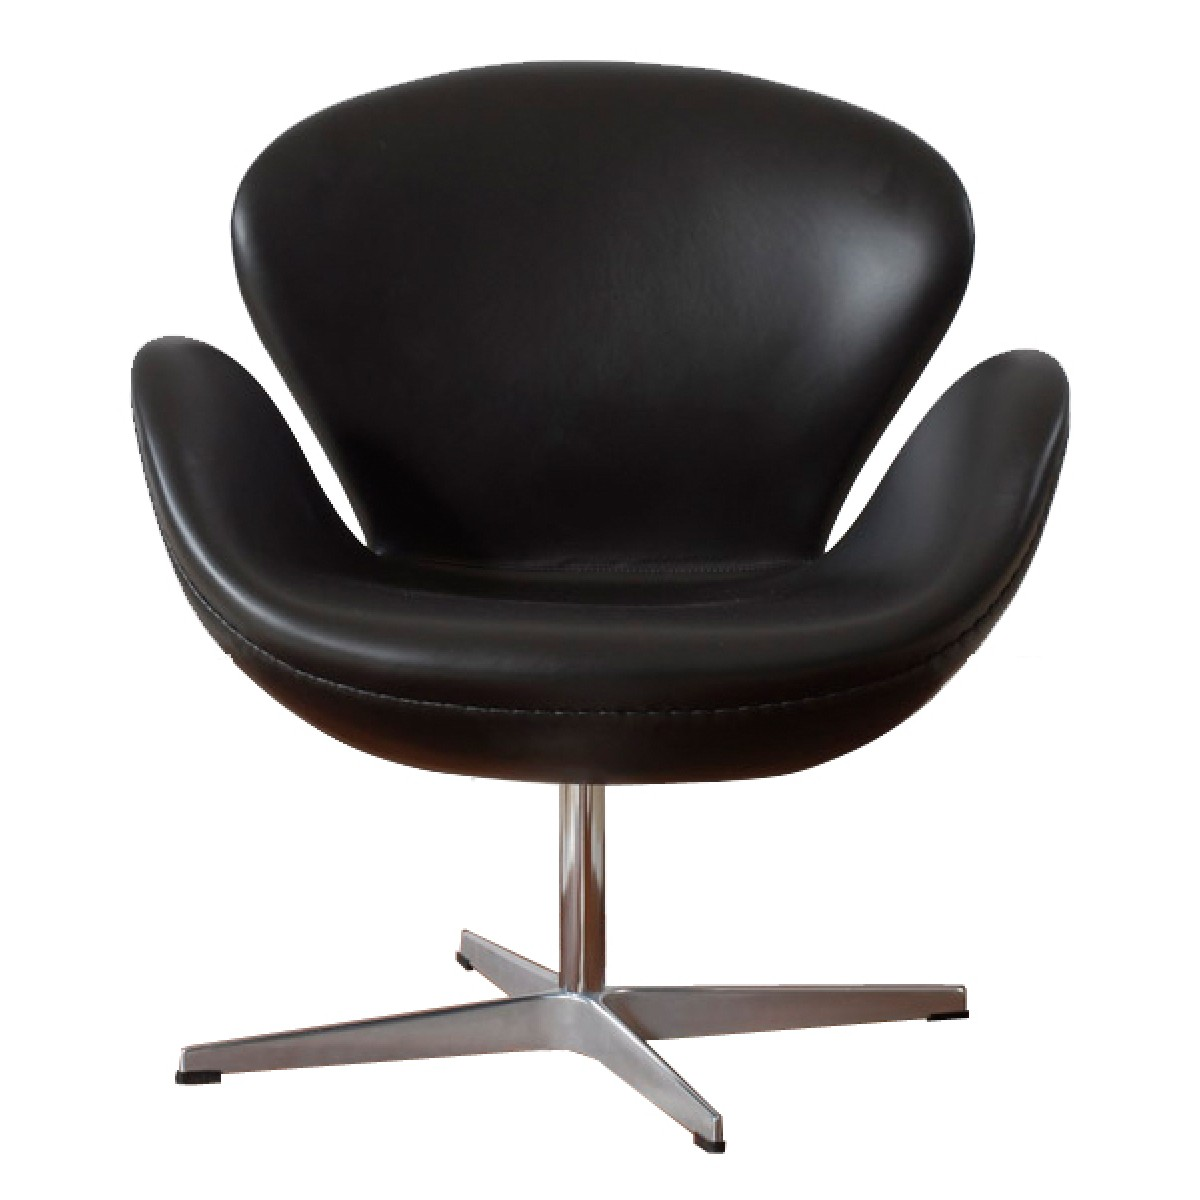 arne jacobsen style swan chair. Black Bedroom Furniture Sets. Home Design Ideas